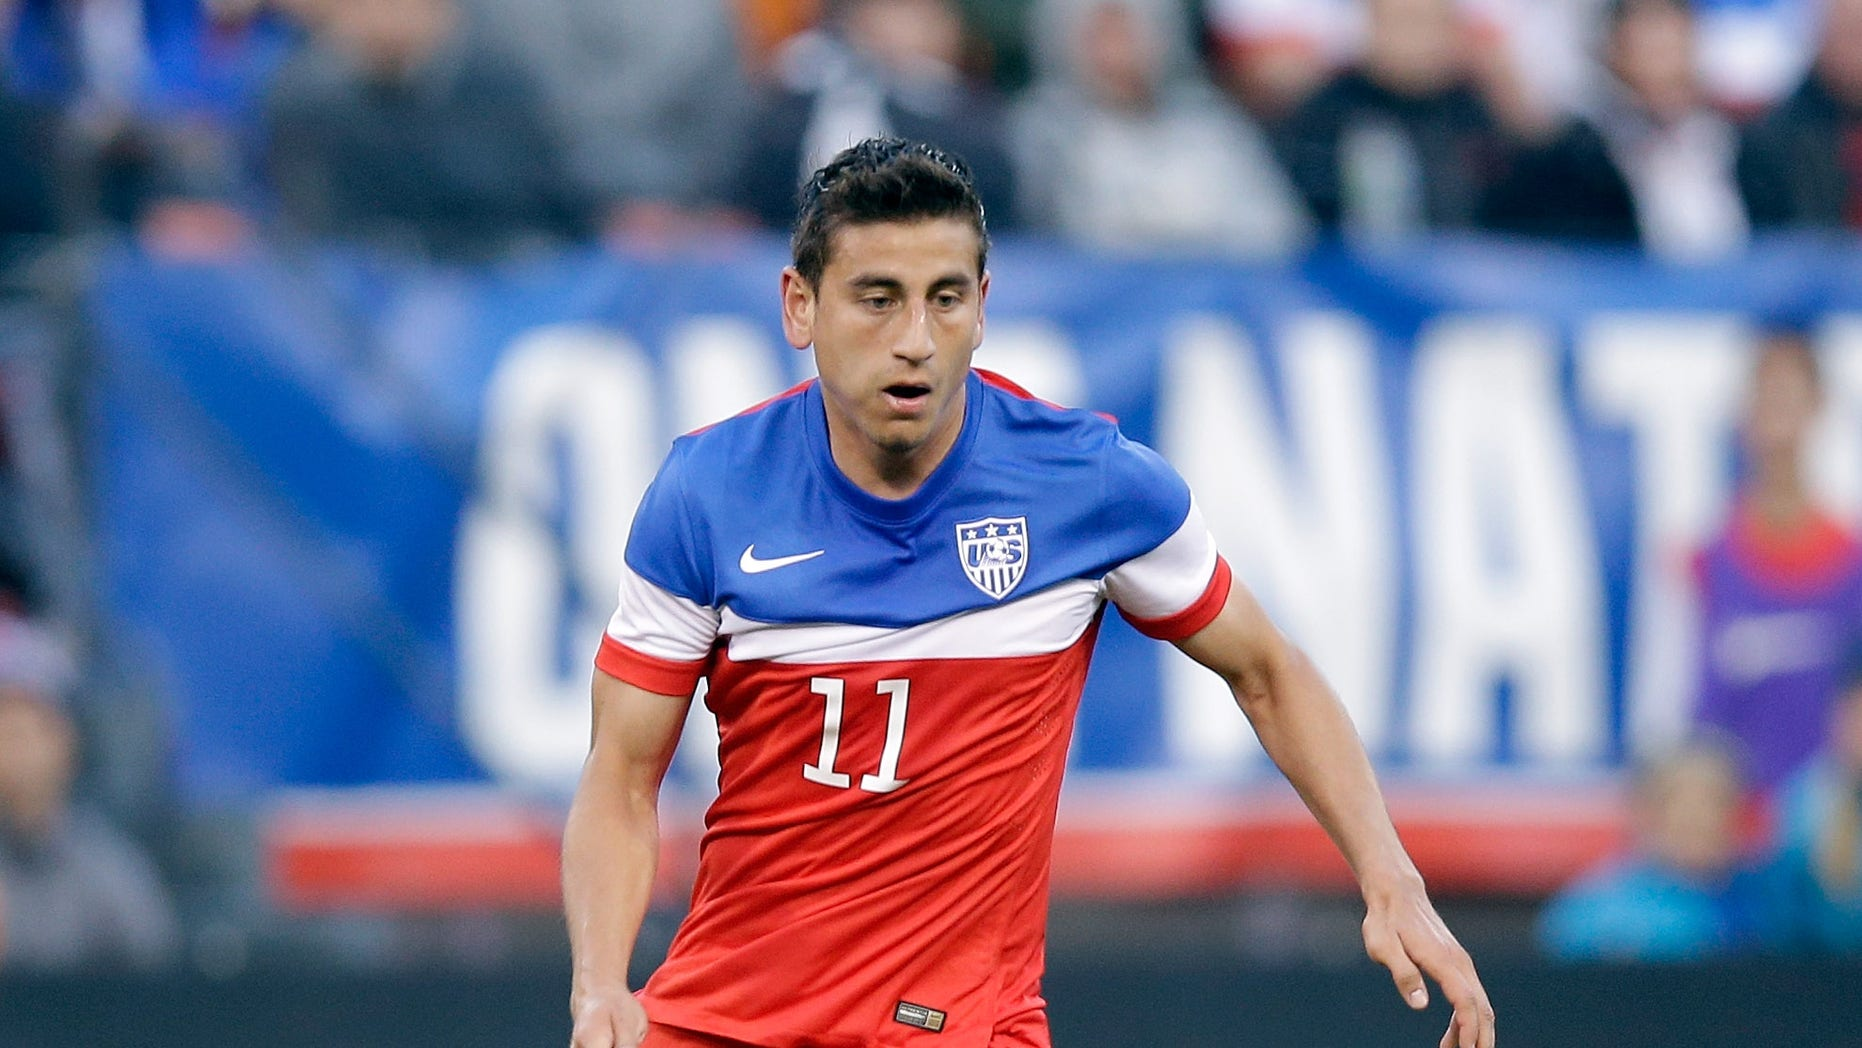 SAN FRANCISCO, CA - MAY 27:  Alejandro Bedoya #11 of the United States in action against Azerbaijan during their match at Candlestick Park on May 27, 2014 in San Francisco, California.  (Photo by Ezra Shaw/Getty Images)